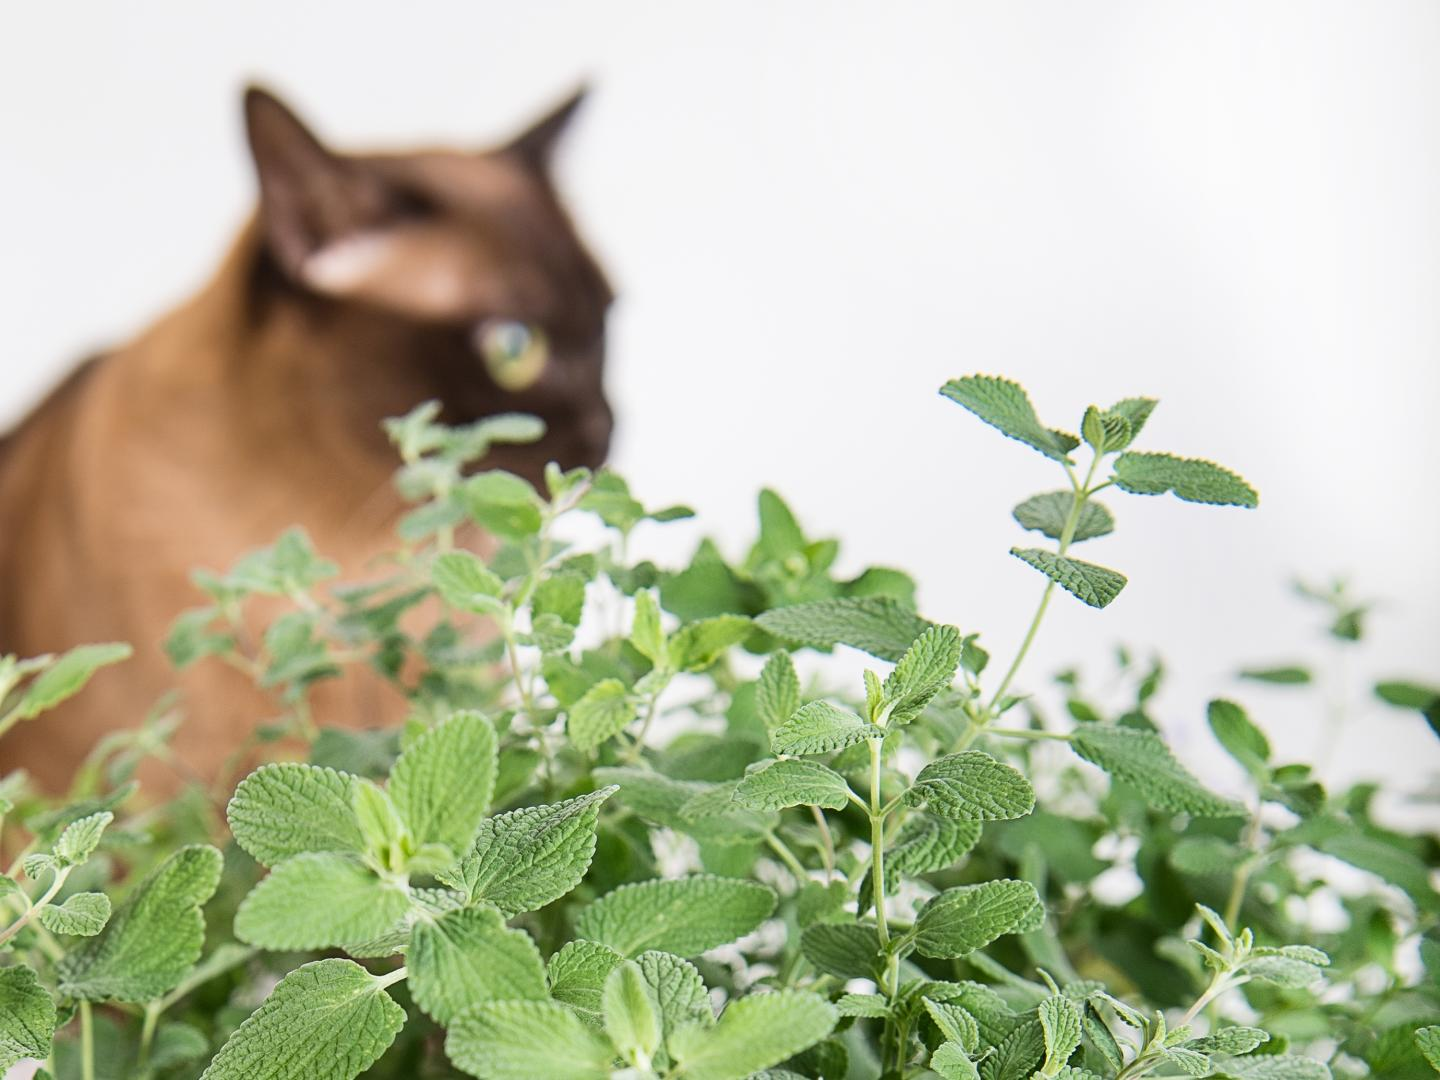 Cat and Catmint